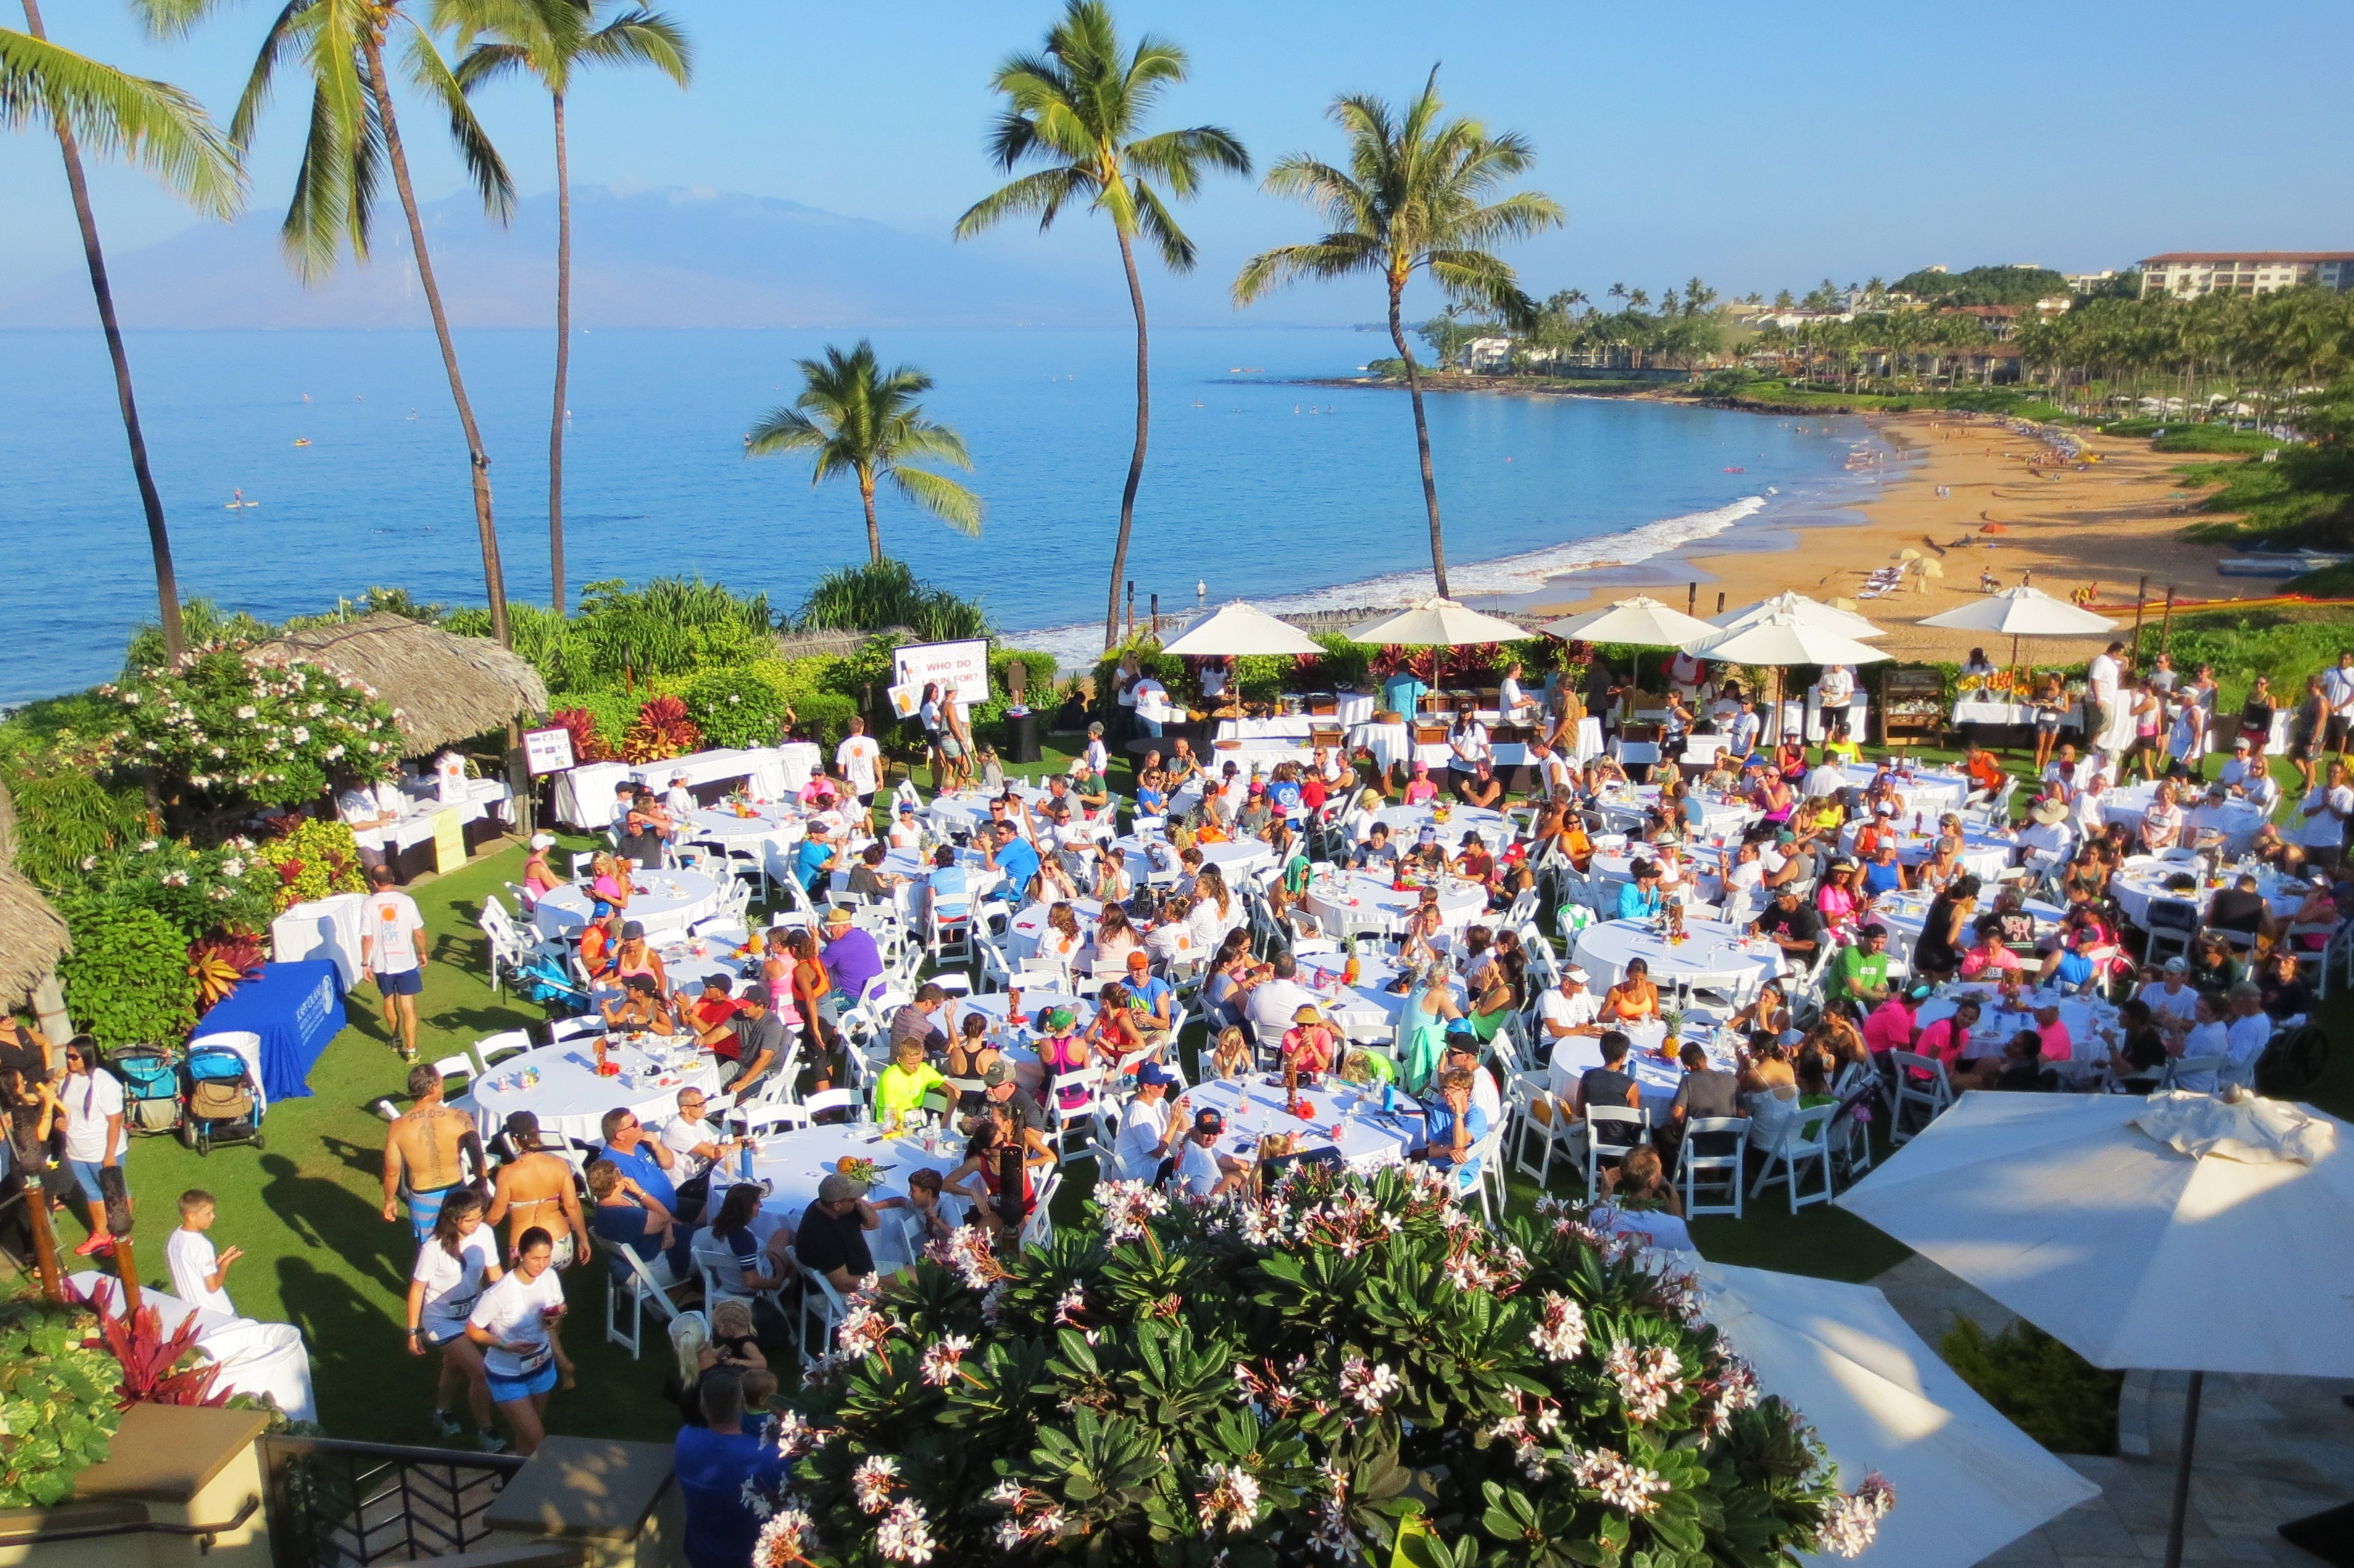 Day of Hope 2016 - Nov. 12, 2016 at the Four Seasons Resort Wailea.